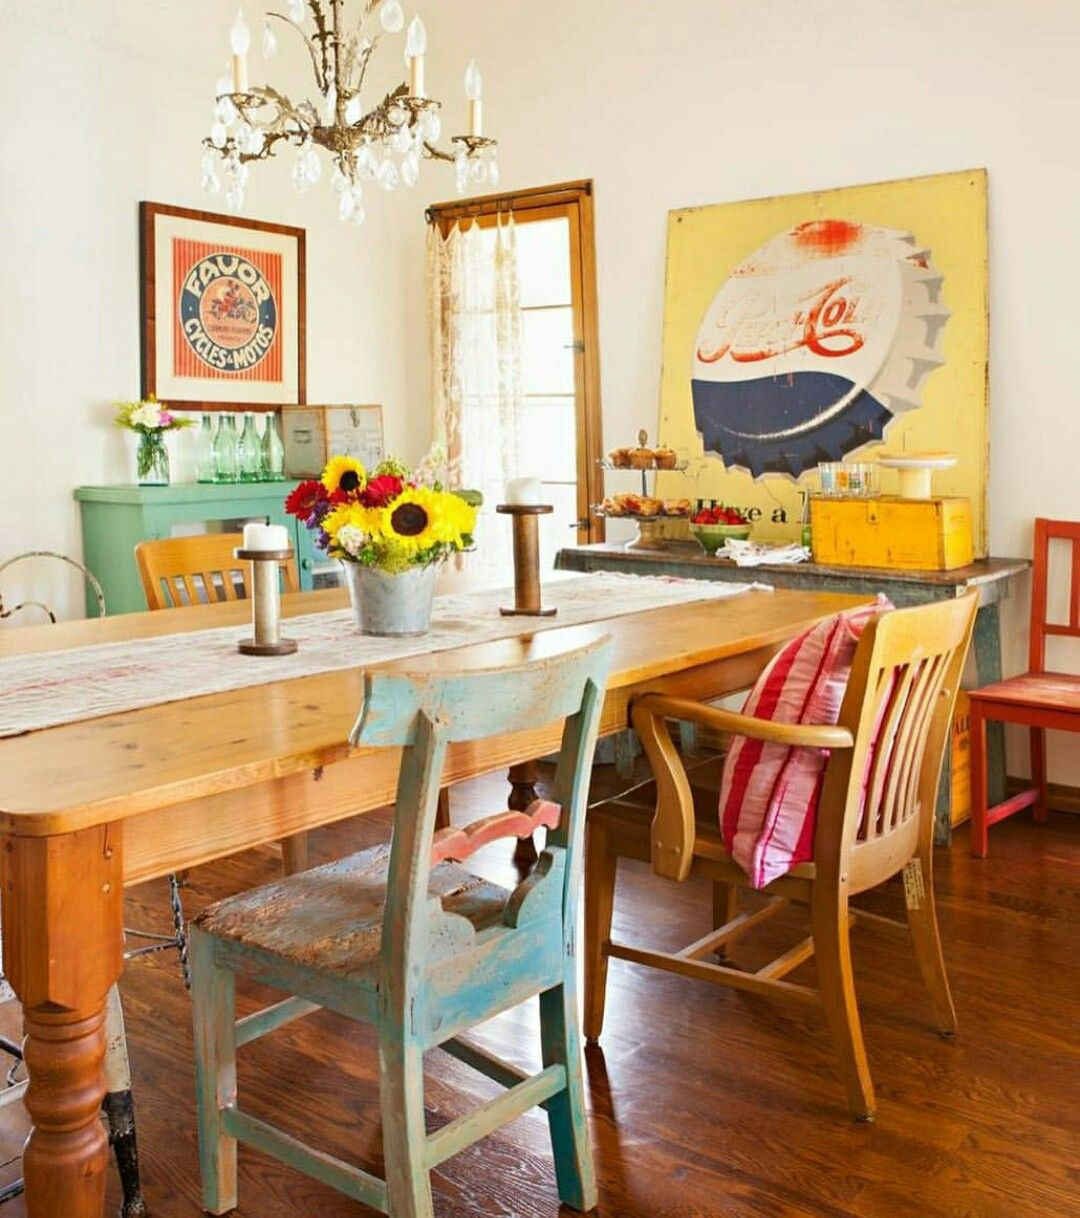 Colorful Vintage Room: Colorful Vintage Decor Dining Room With Mix Matched Chairs